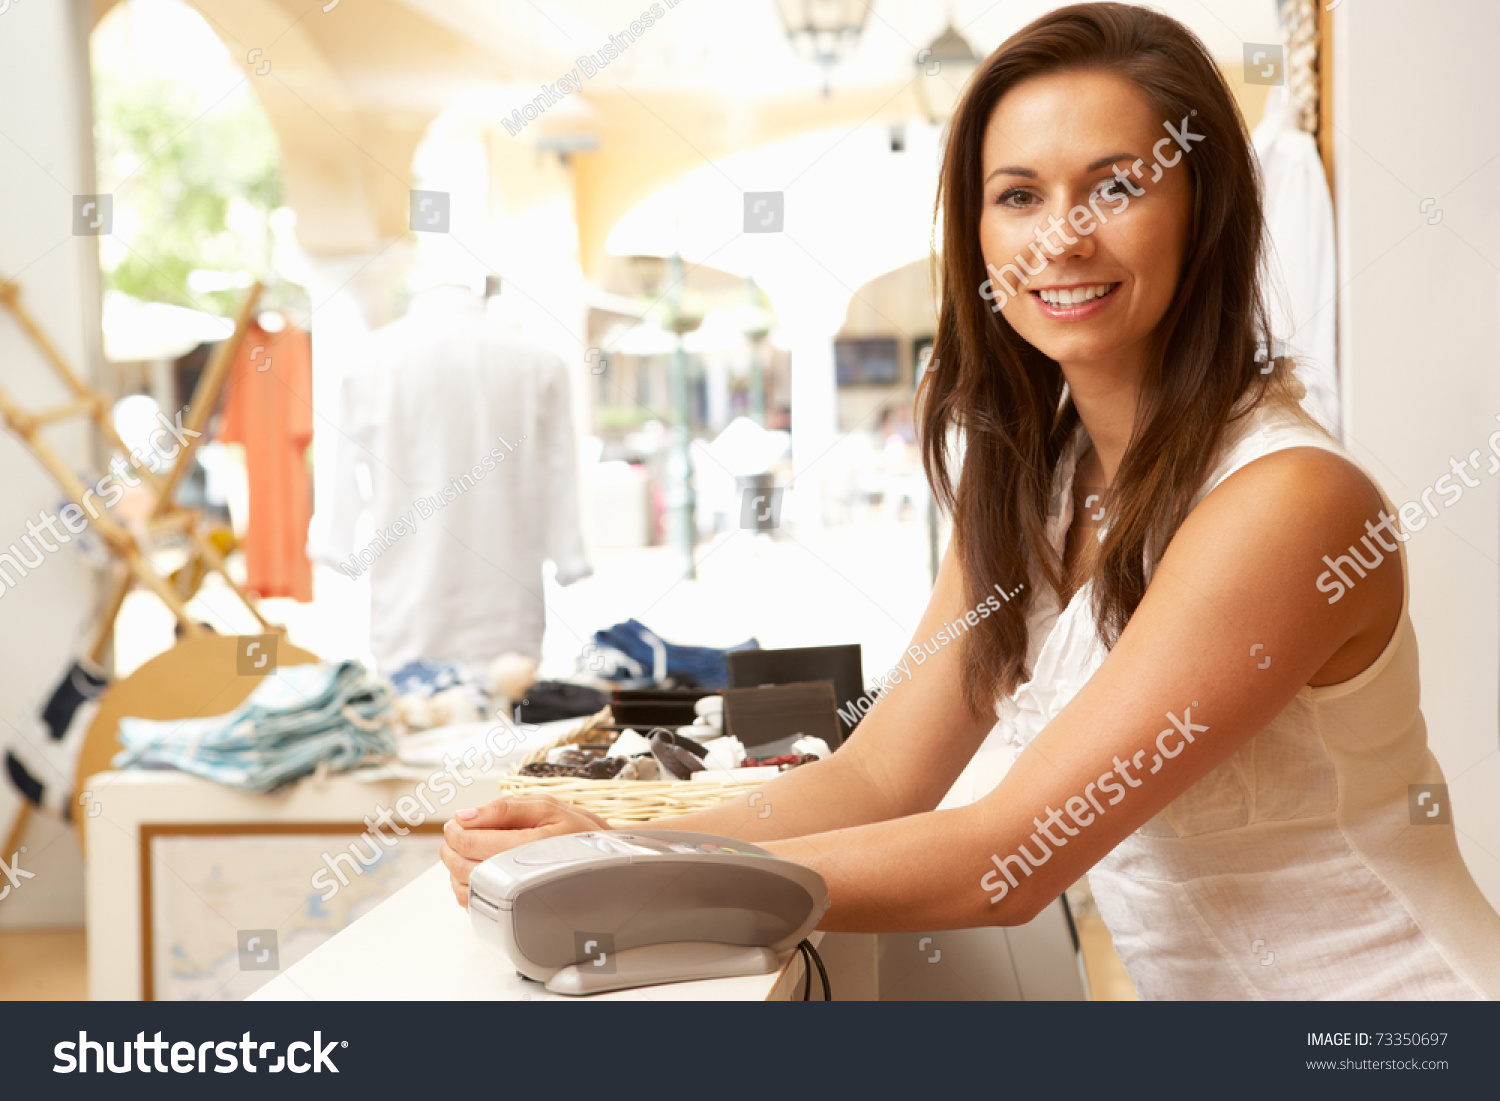 female s assistant at checkout of clothing store stock photo save to a lightbox